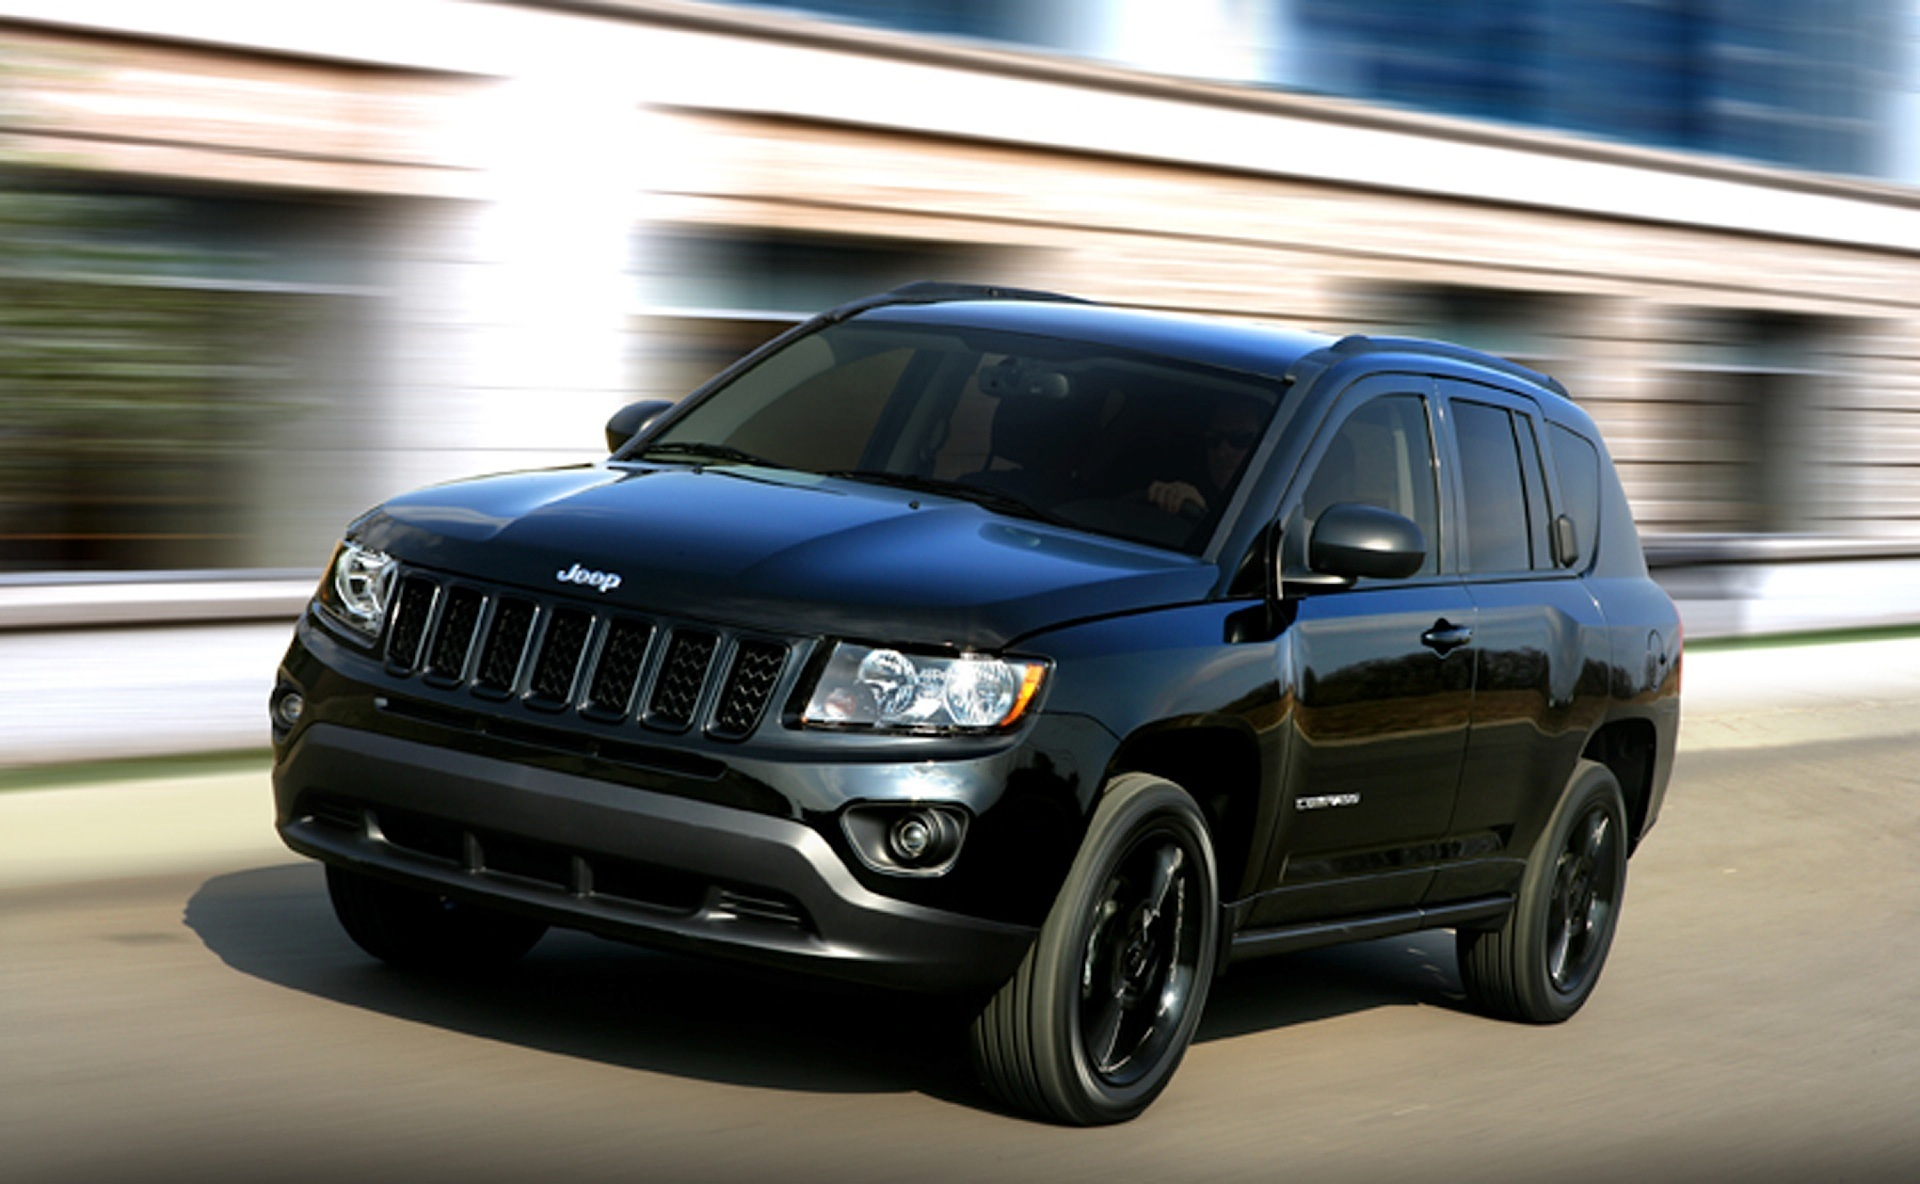 2012 Jeep Grand Cherokee For Sale >> JEEP Compass specs & photos - 2011, 2012, 2013, 2014, 2015, 2016 - autoevolution